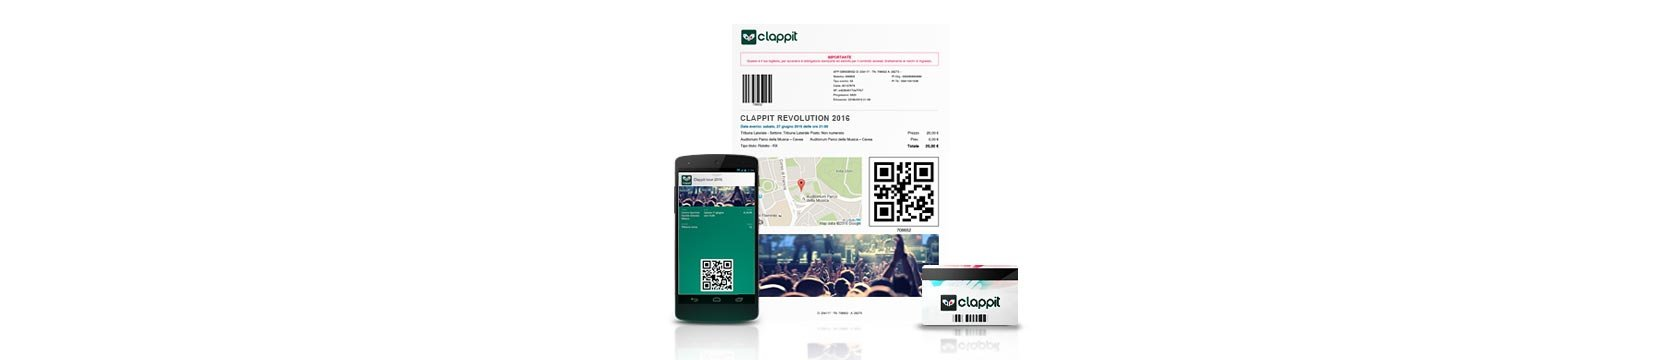 Clappit-Full-Ticketing-Ritoro-Biglietti-Stampa-A-Casa-Ticketatome-A4